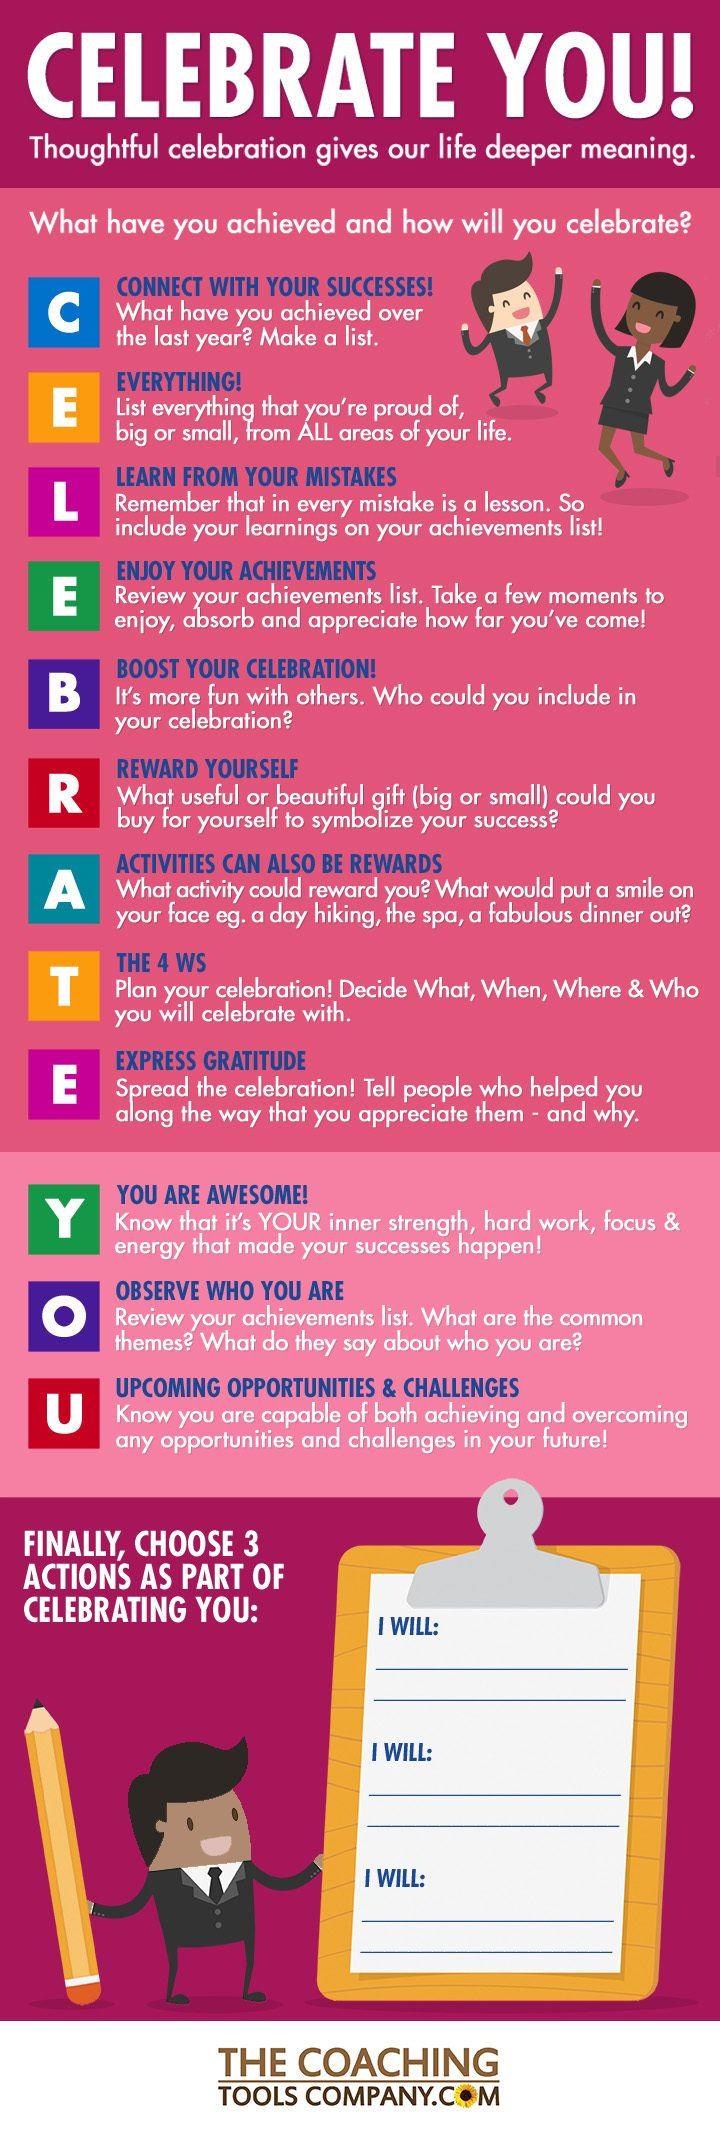 Celebrate You Infographic from The Coaching Tools Company